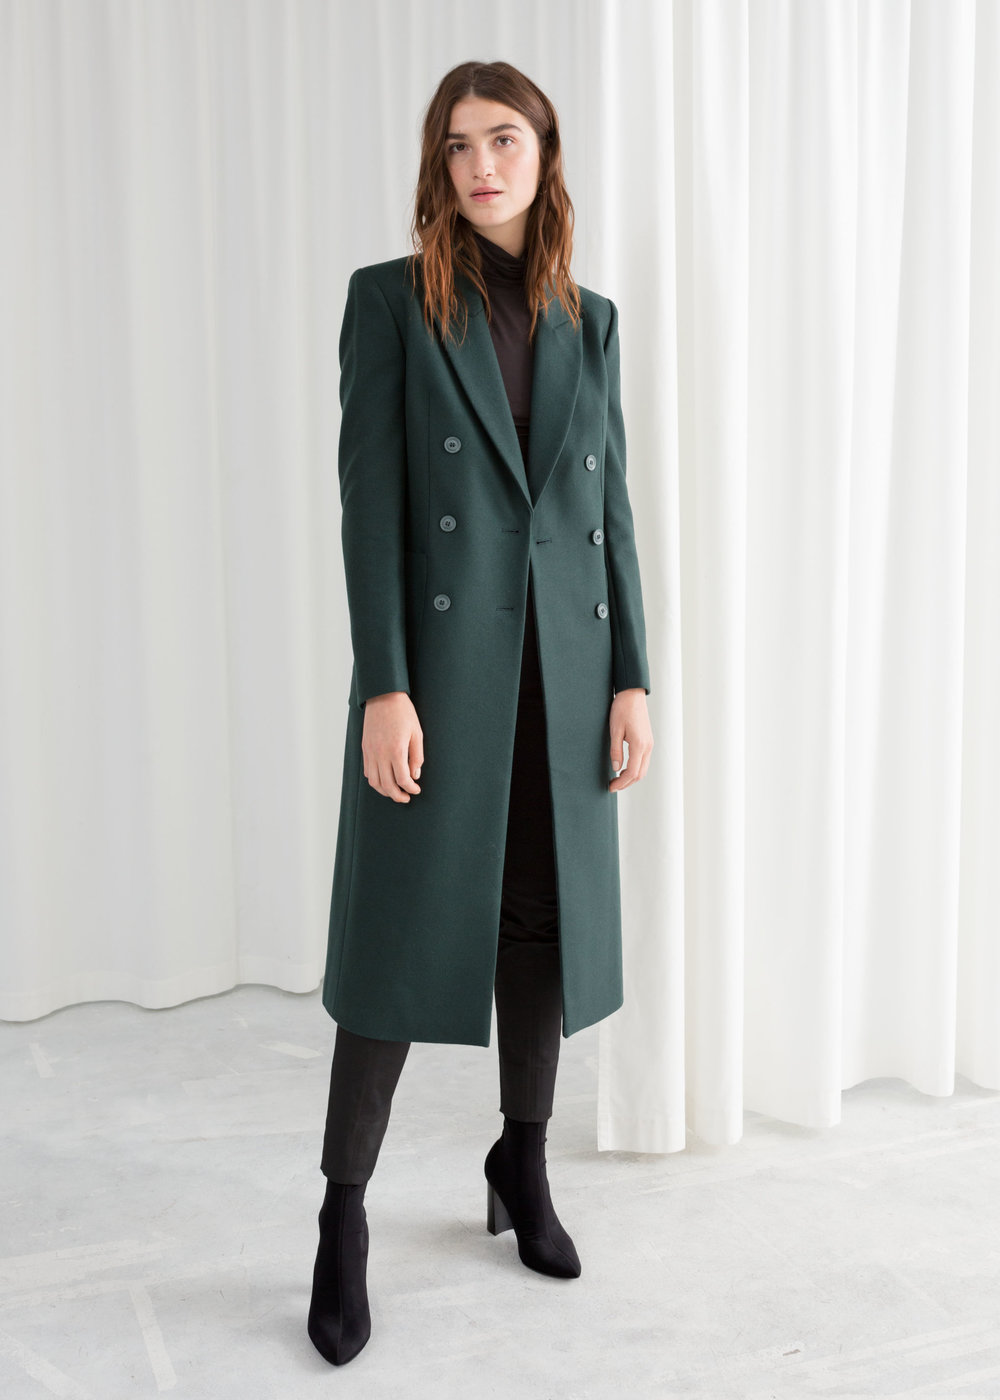 Pine tree green long coat from And Other Stories